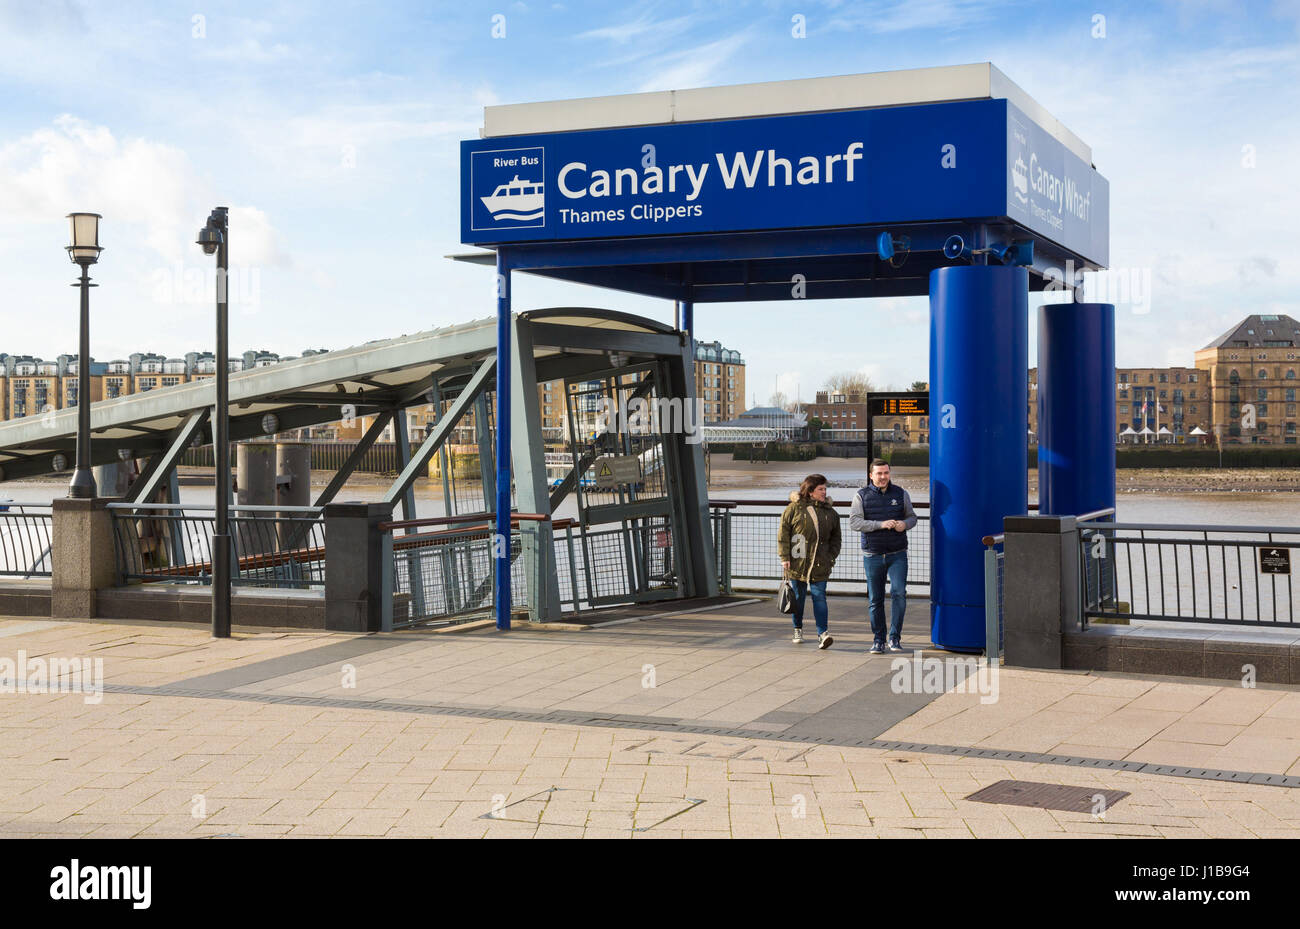 Thames Clippers ferry terminal on the River Thames in Canary Wharf, Docklands, London, England - Stock Image